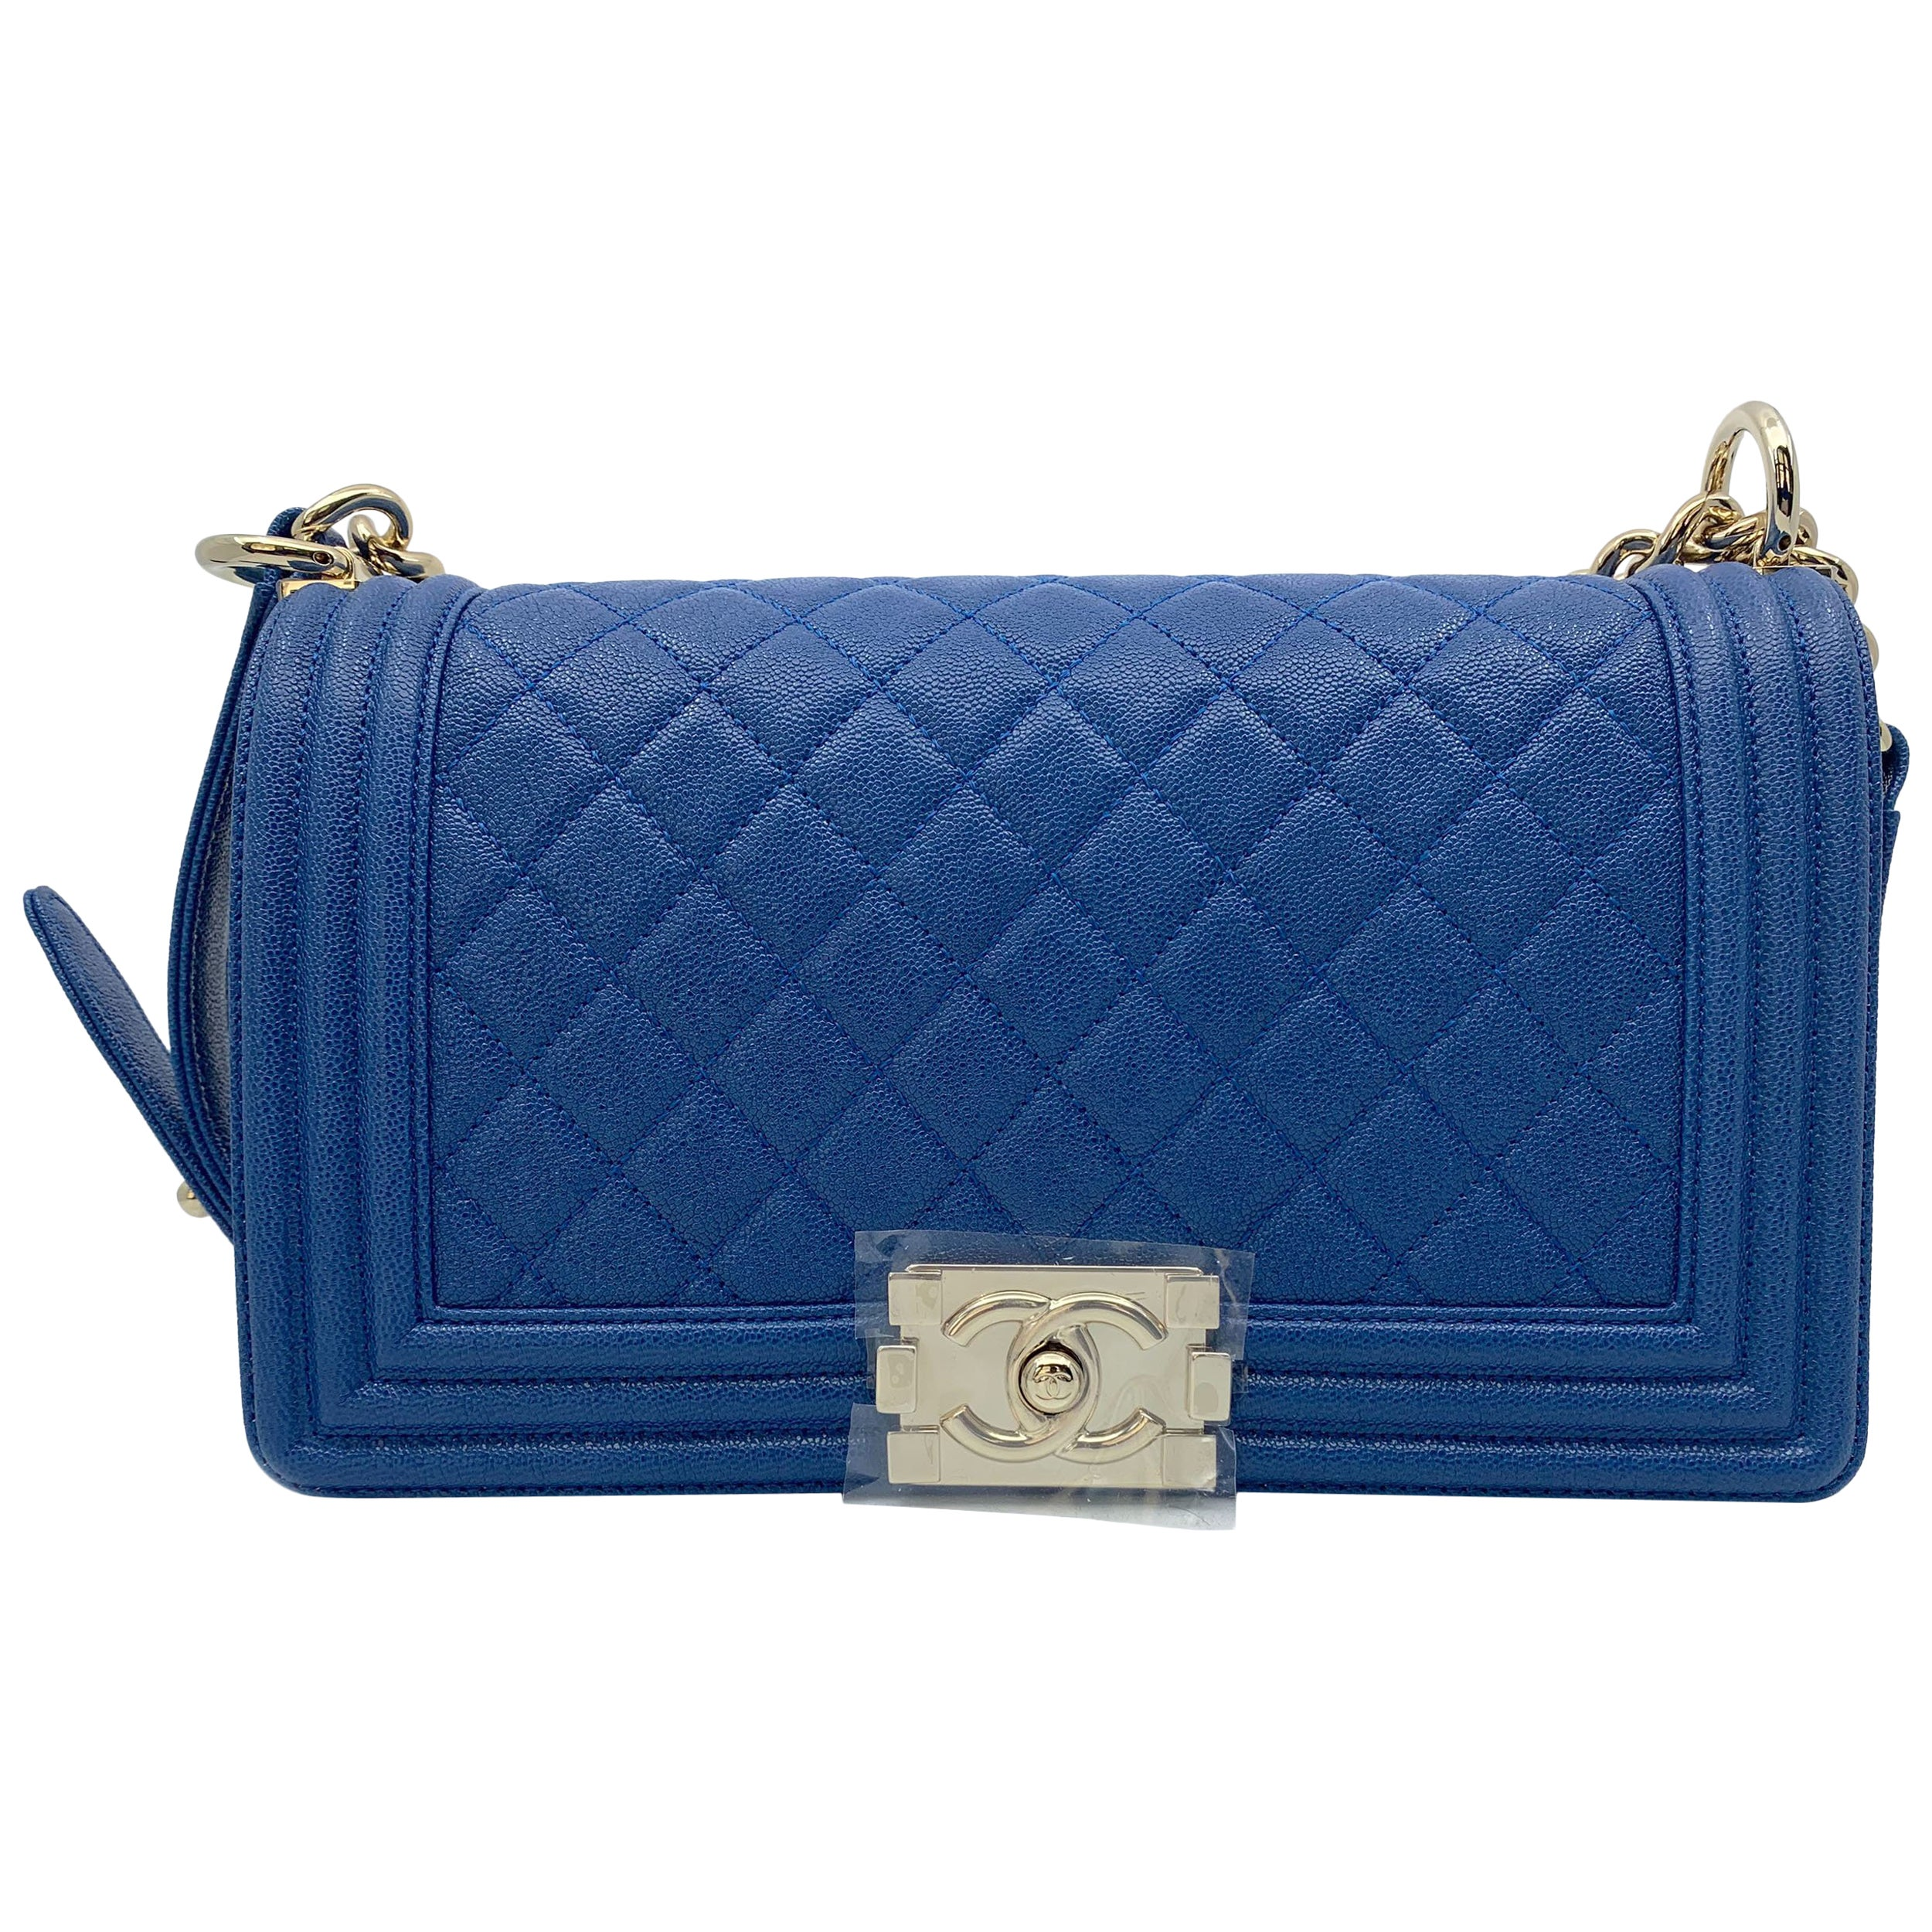 0cca4f60b6a537 Chanel Boy Gold Tone Chain leather Blue Shoulder Ladies Bag For Sale at  1stdibs